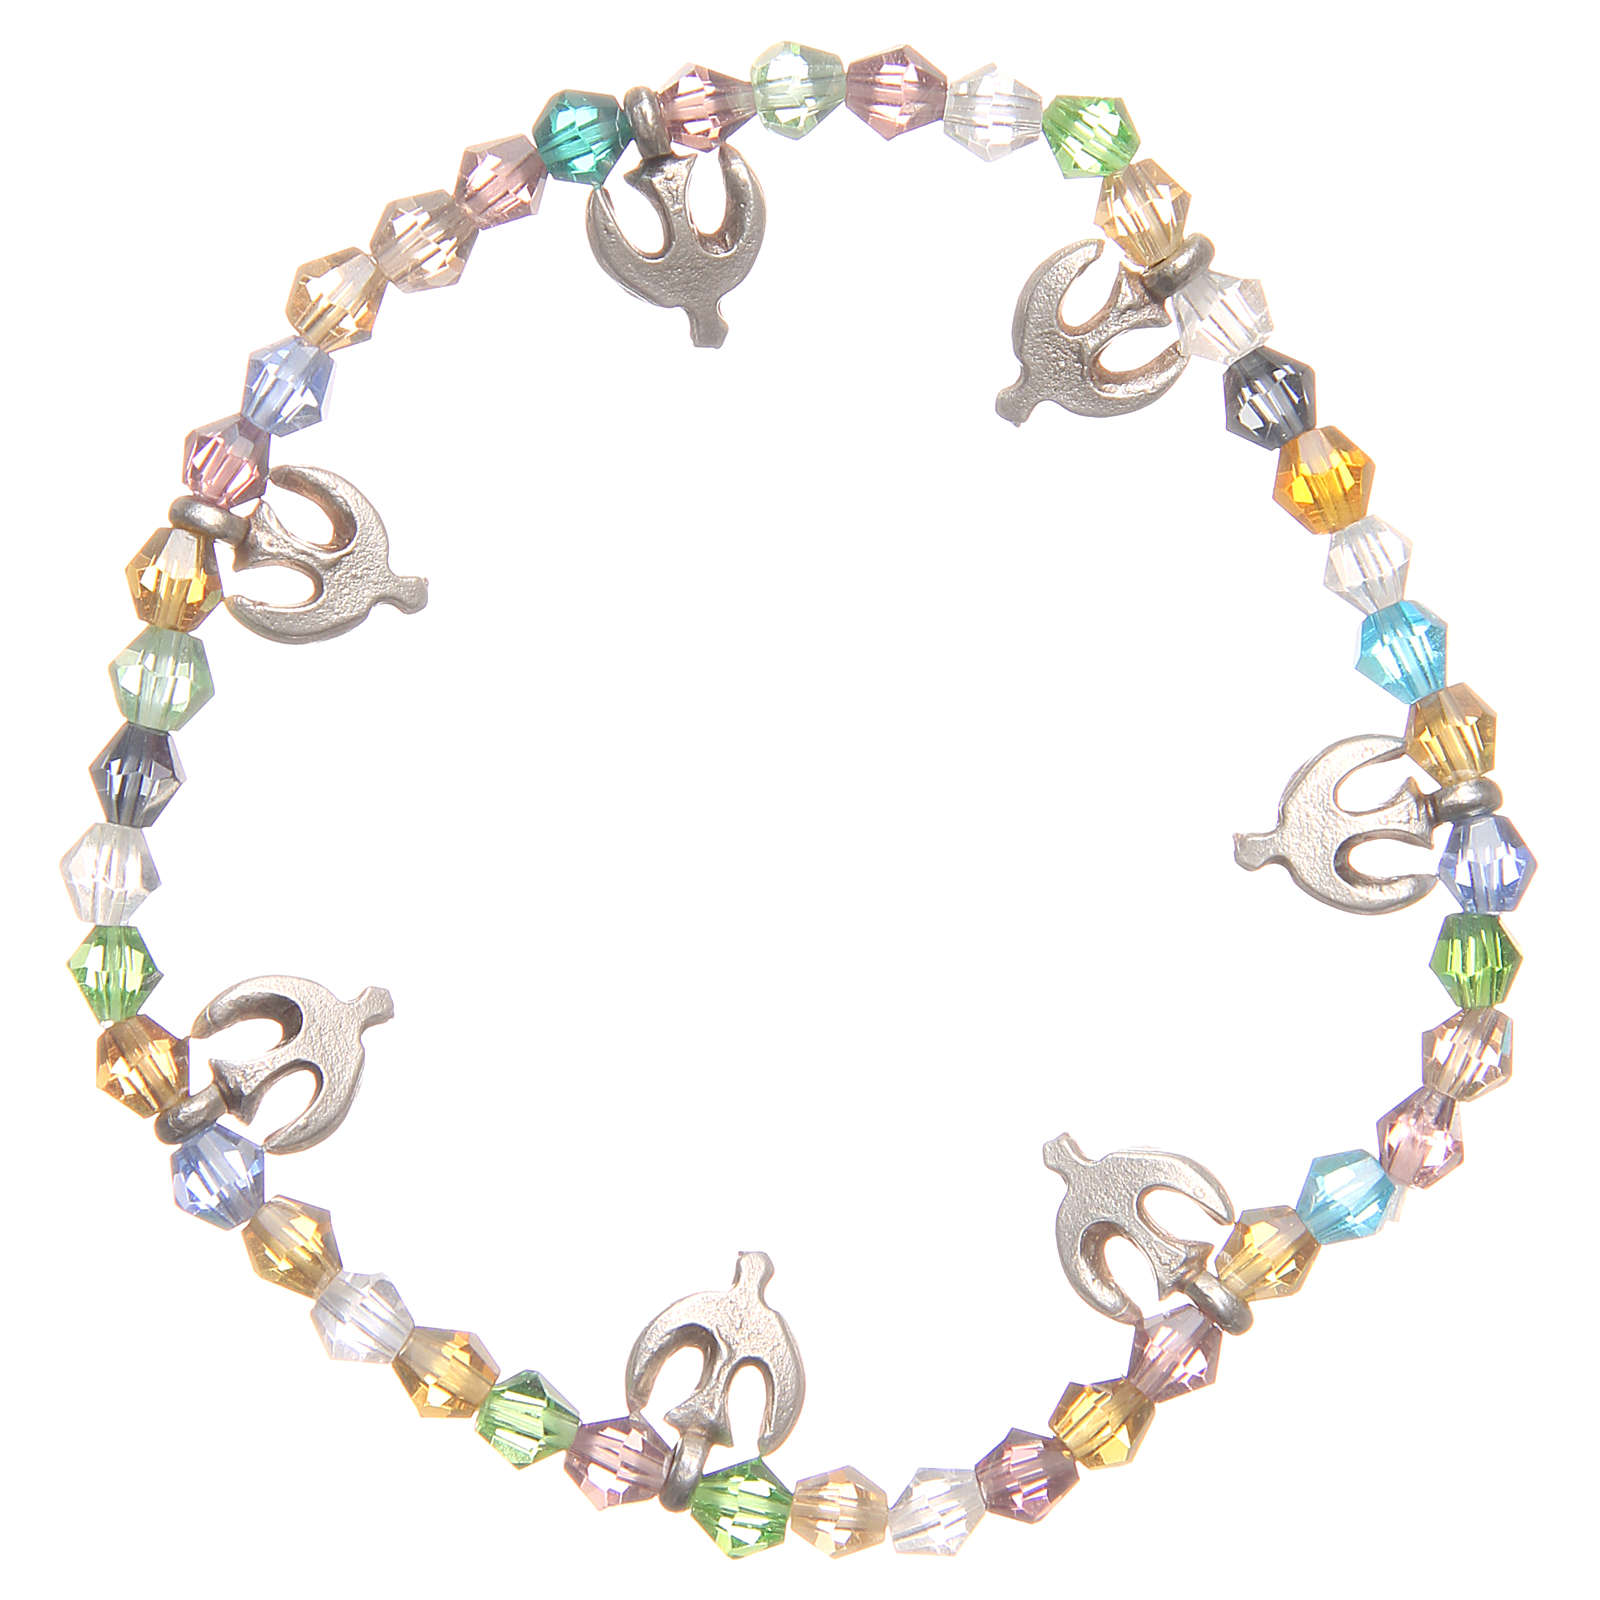 Bracciale pace perline color pastello 4